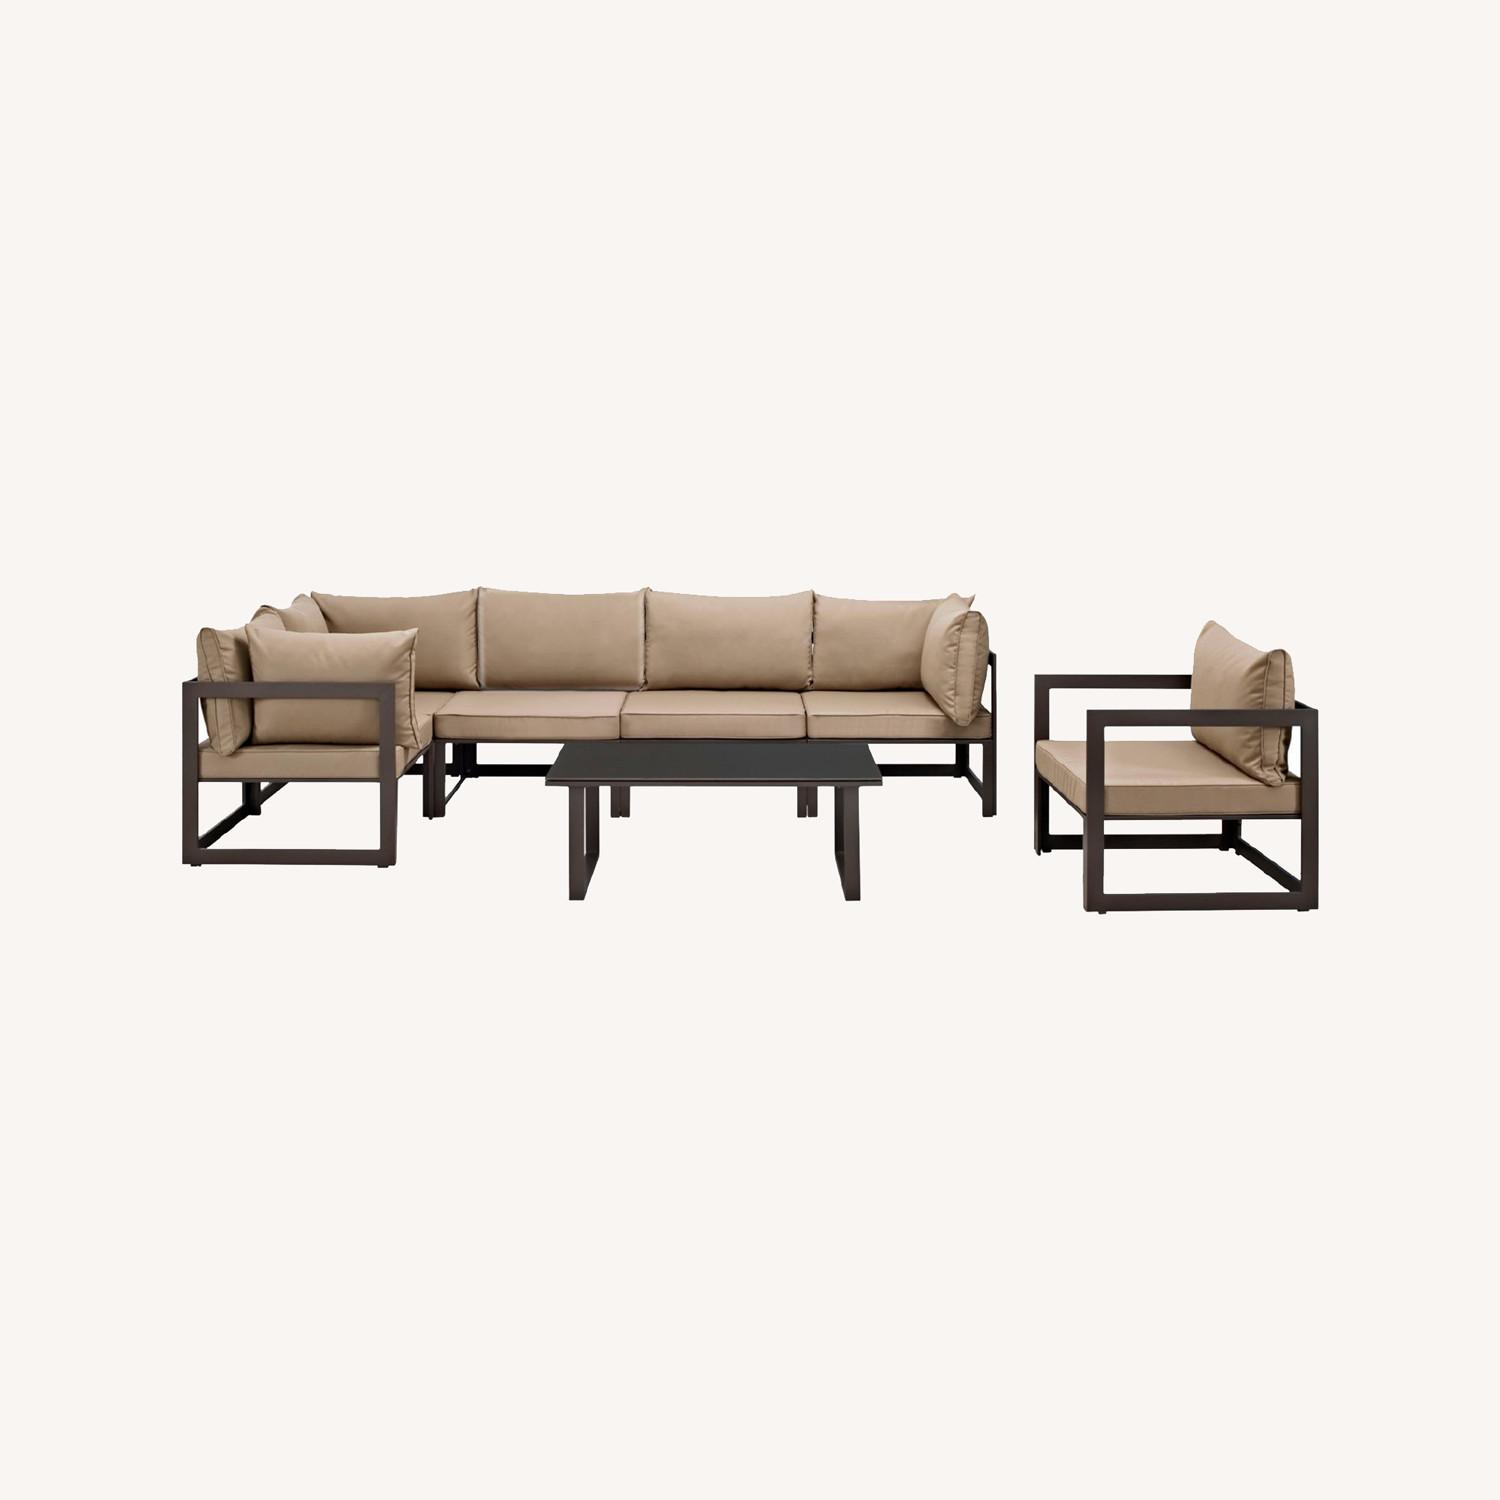 7-Piece Outdoor Sectional In Mocha & Brown Finish - image-10